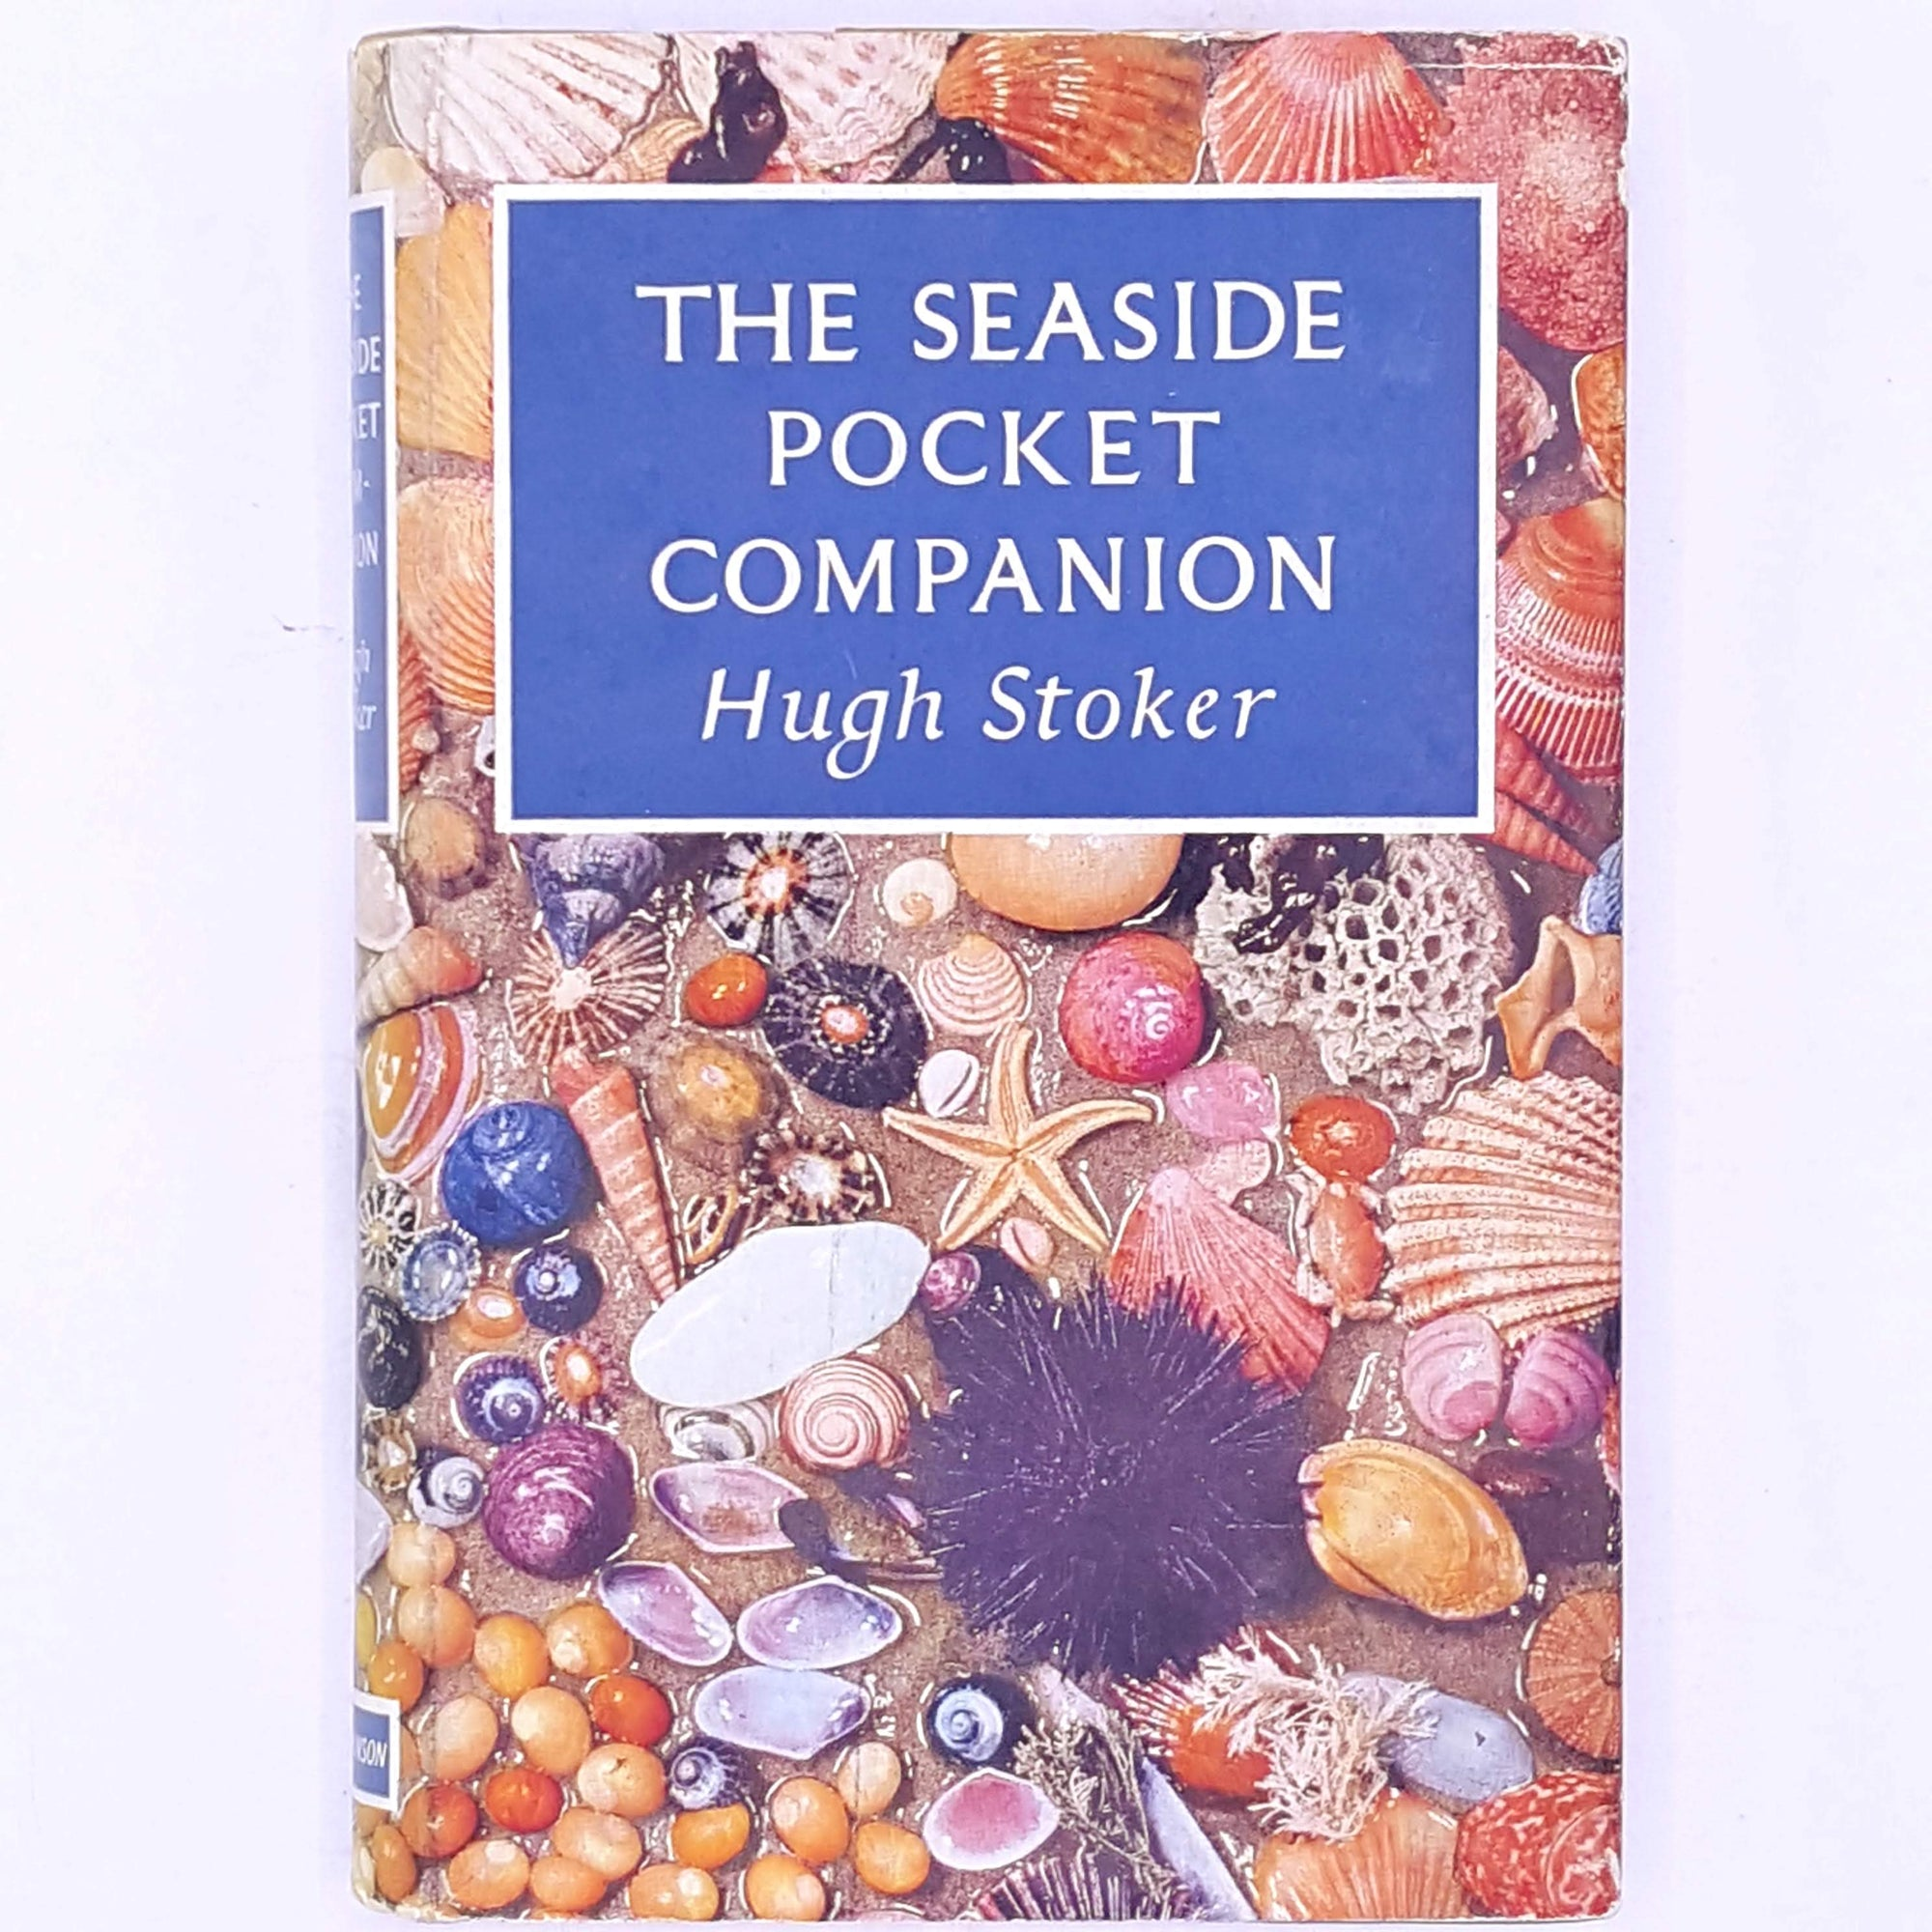 The Seaside Pocket Companion Hugh Stoker